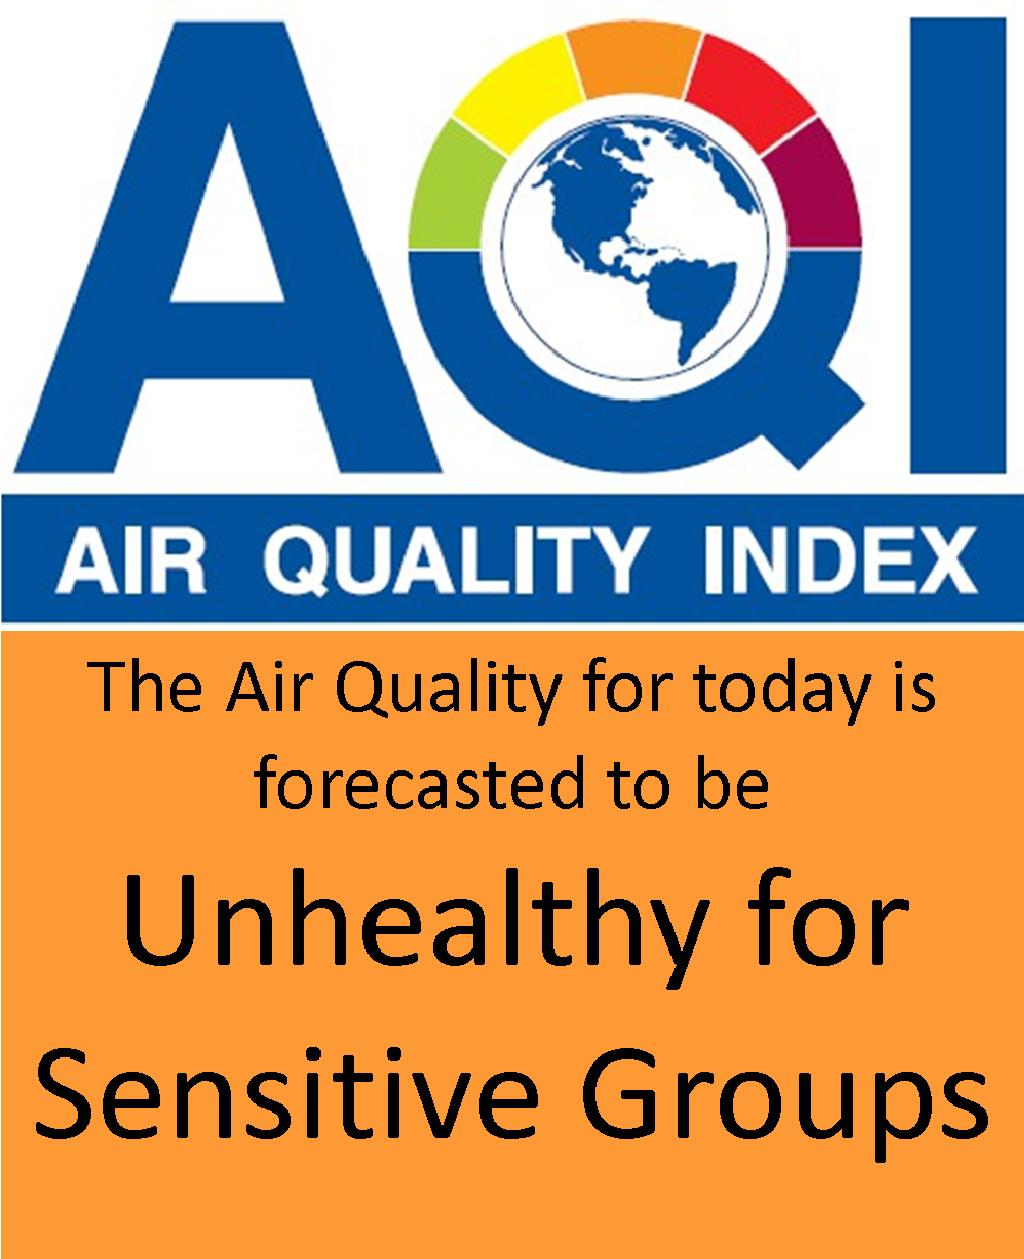 The Air Quality Index for August 3rd is forecasted to be Unhealthy for Sensitive Groups